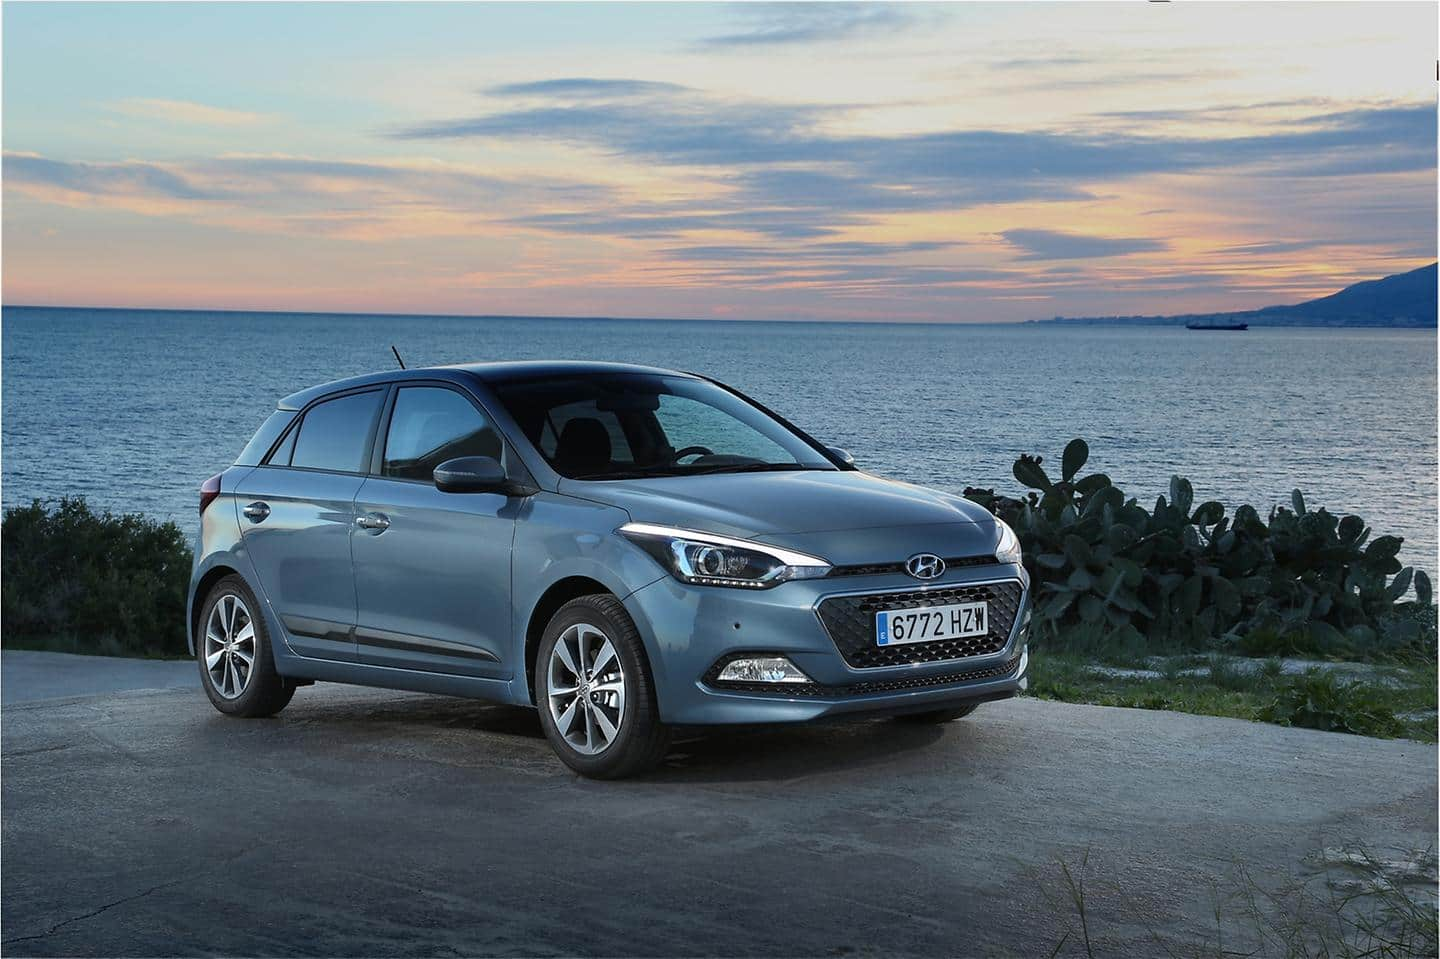 New Generation i20 Wins Prestigious Design Award